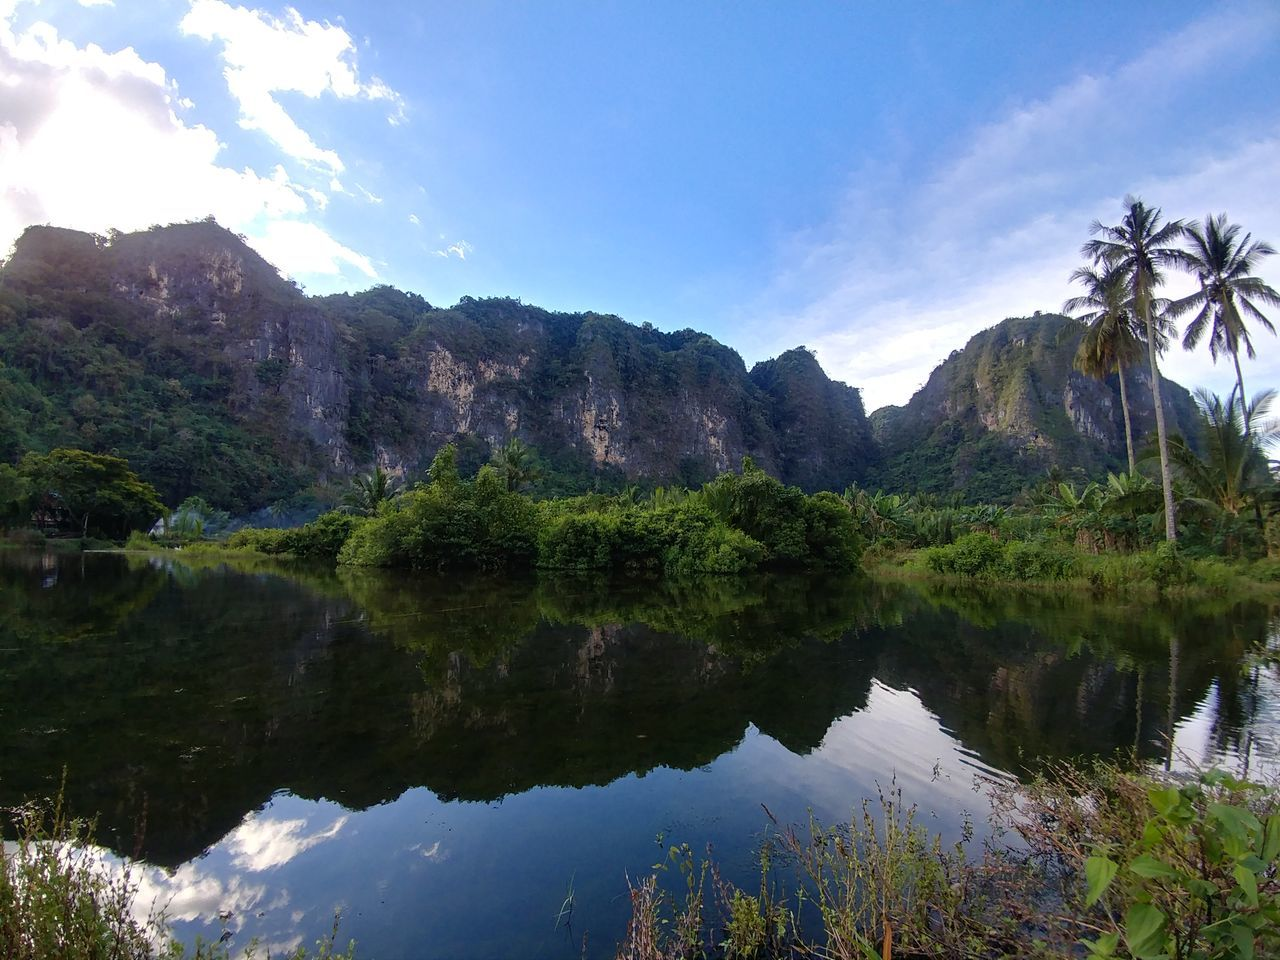 reflection, mountain, nature, sky, scenics, beauty in nature, tranquil scene, lake, outdoors, water, tranquility, tree, day, no people, mountain range